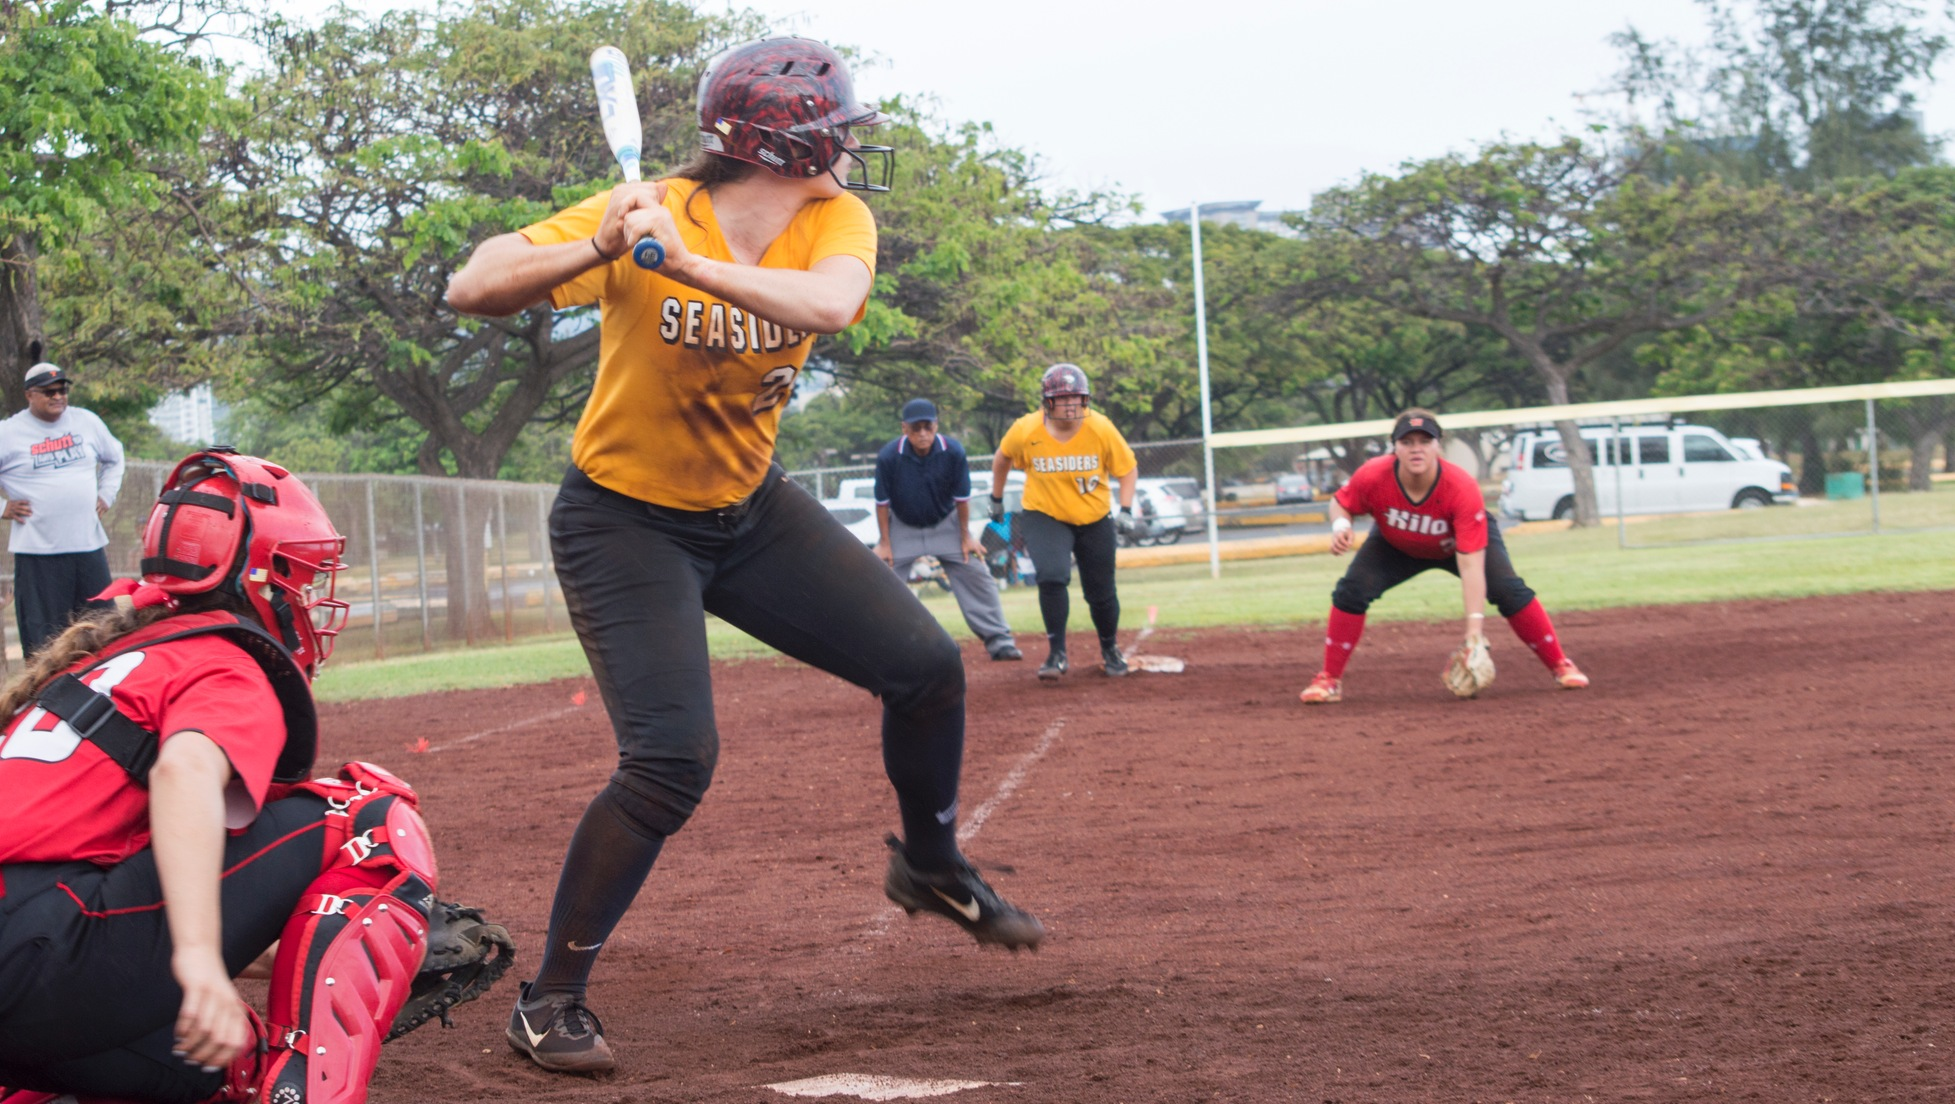 Alanna Anderson readies for a pitch against Hawaii Hilo at Sand Island Park.